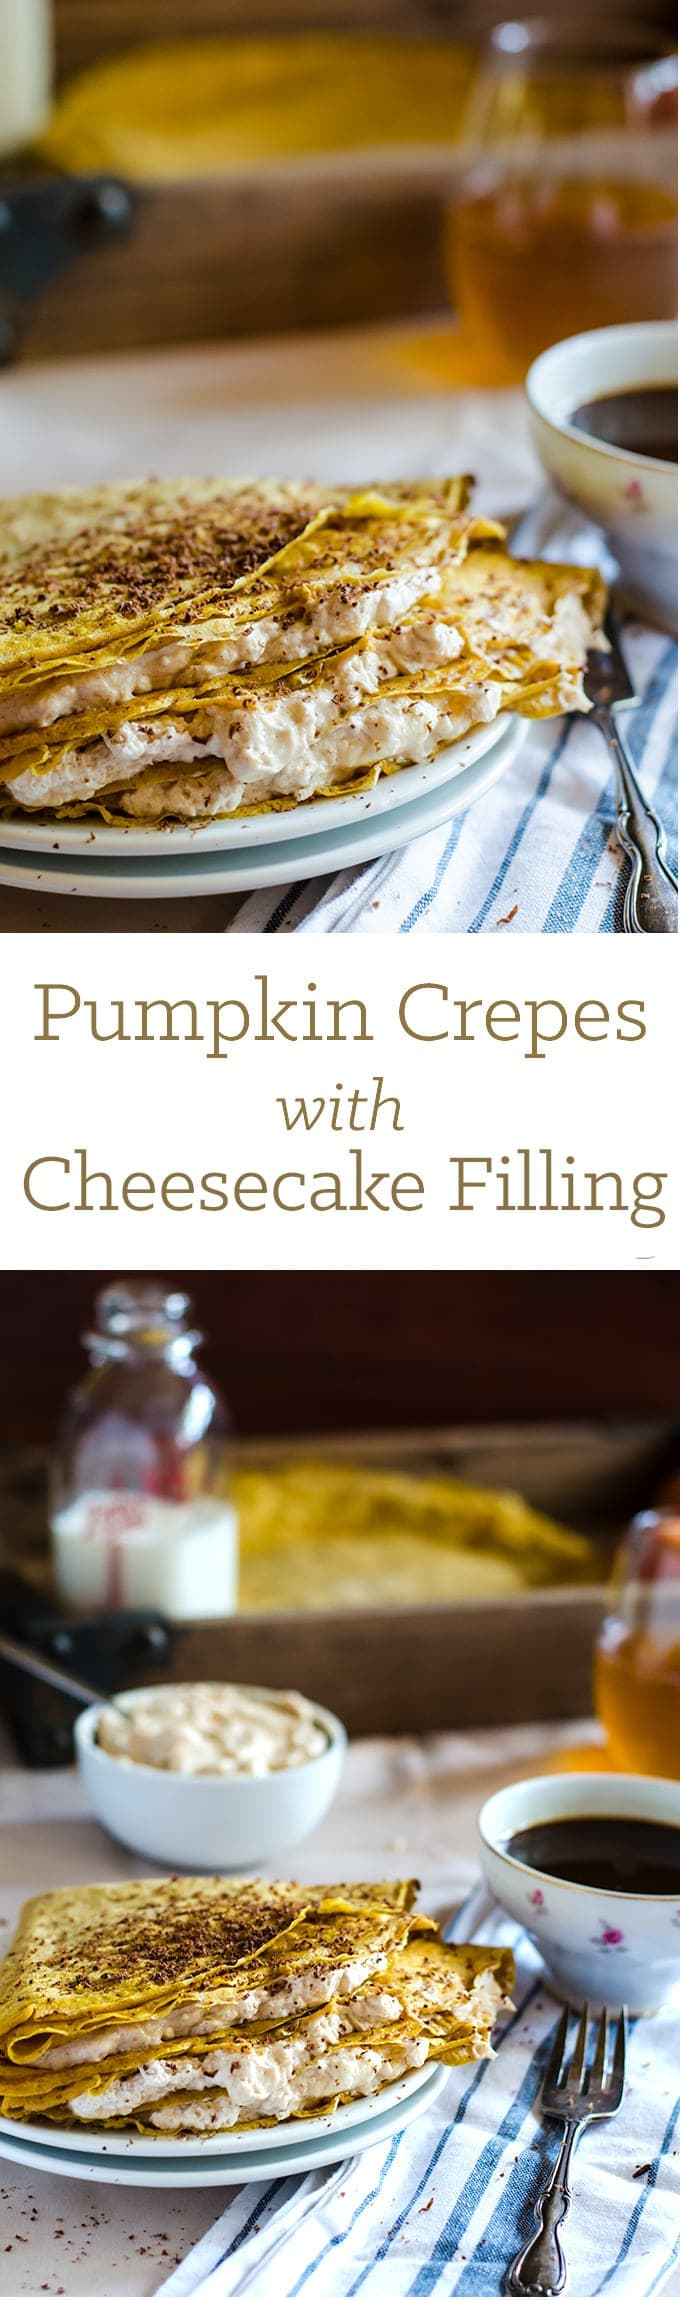 These pumpkin crepes with cinnamon ginger cheesecake filling are everything. Definitely a must-make during the weekend.